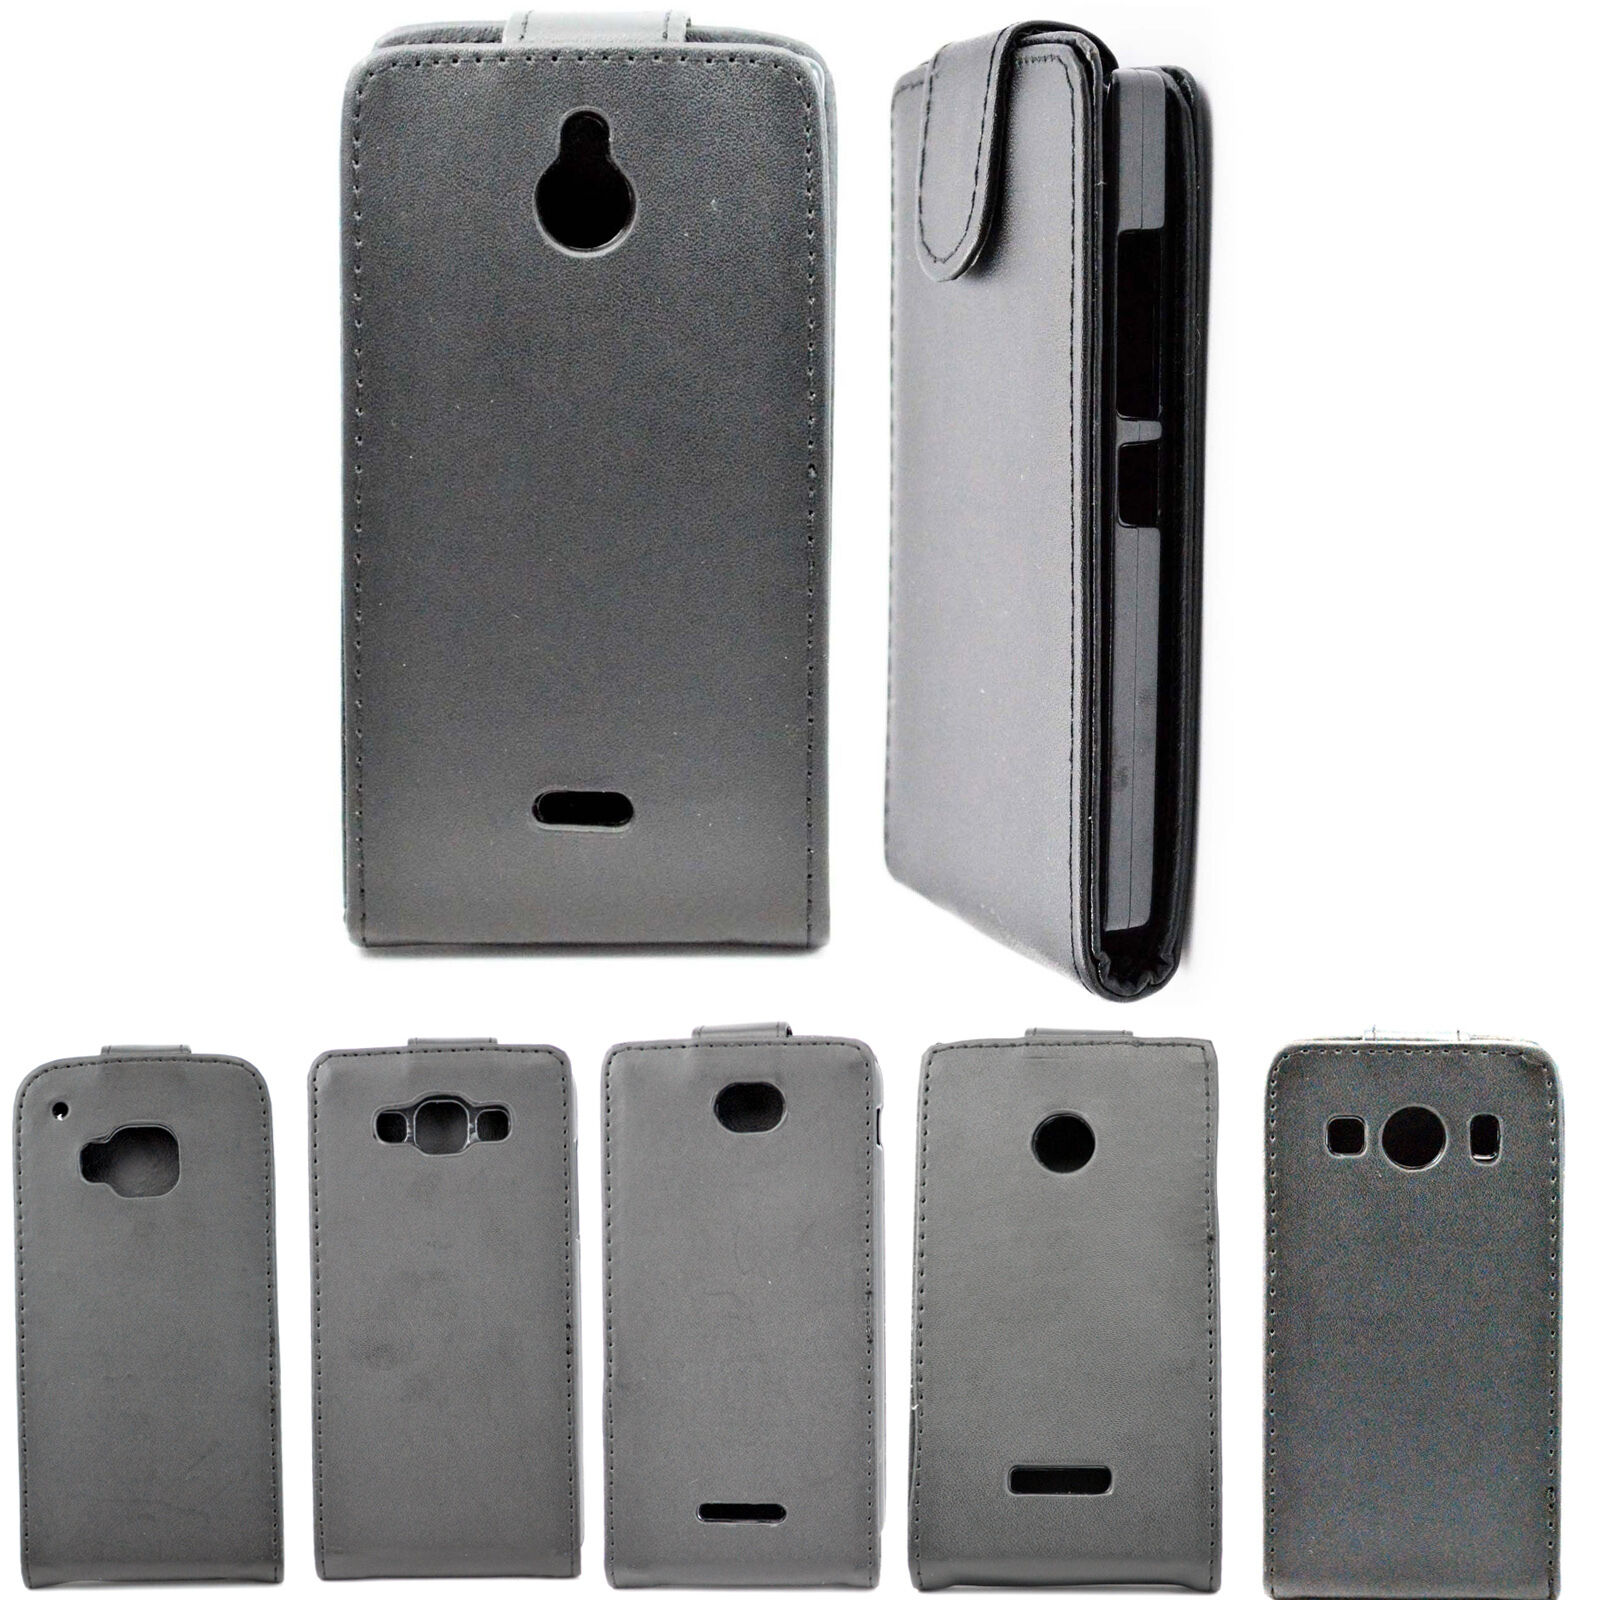 Phone Skin Case Cover for Samsung Galaxy Note 3 III N9000  eBay